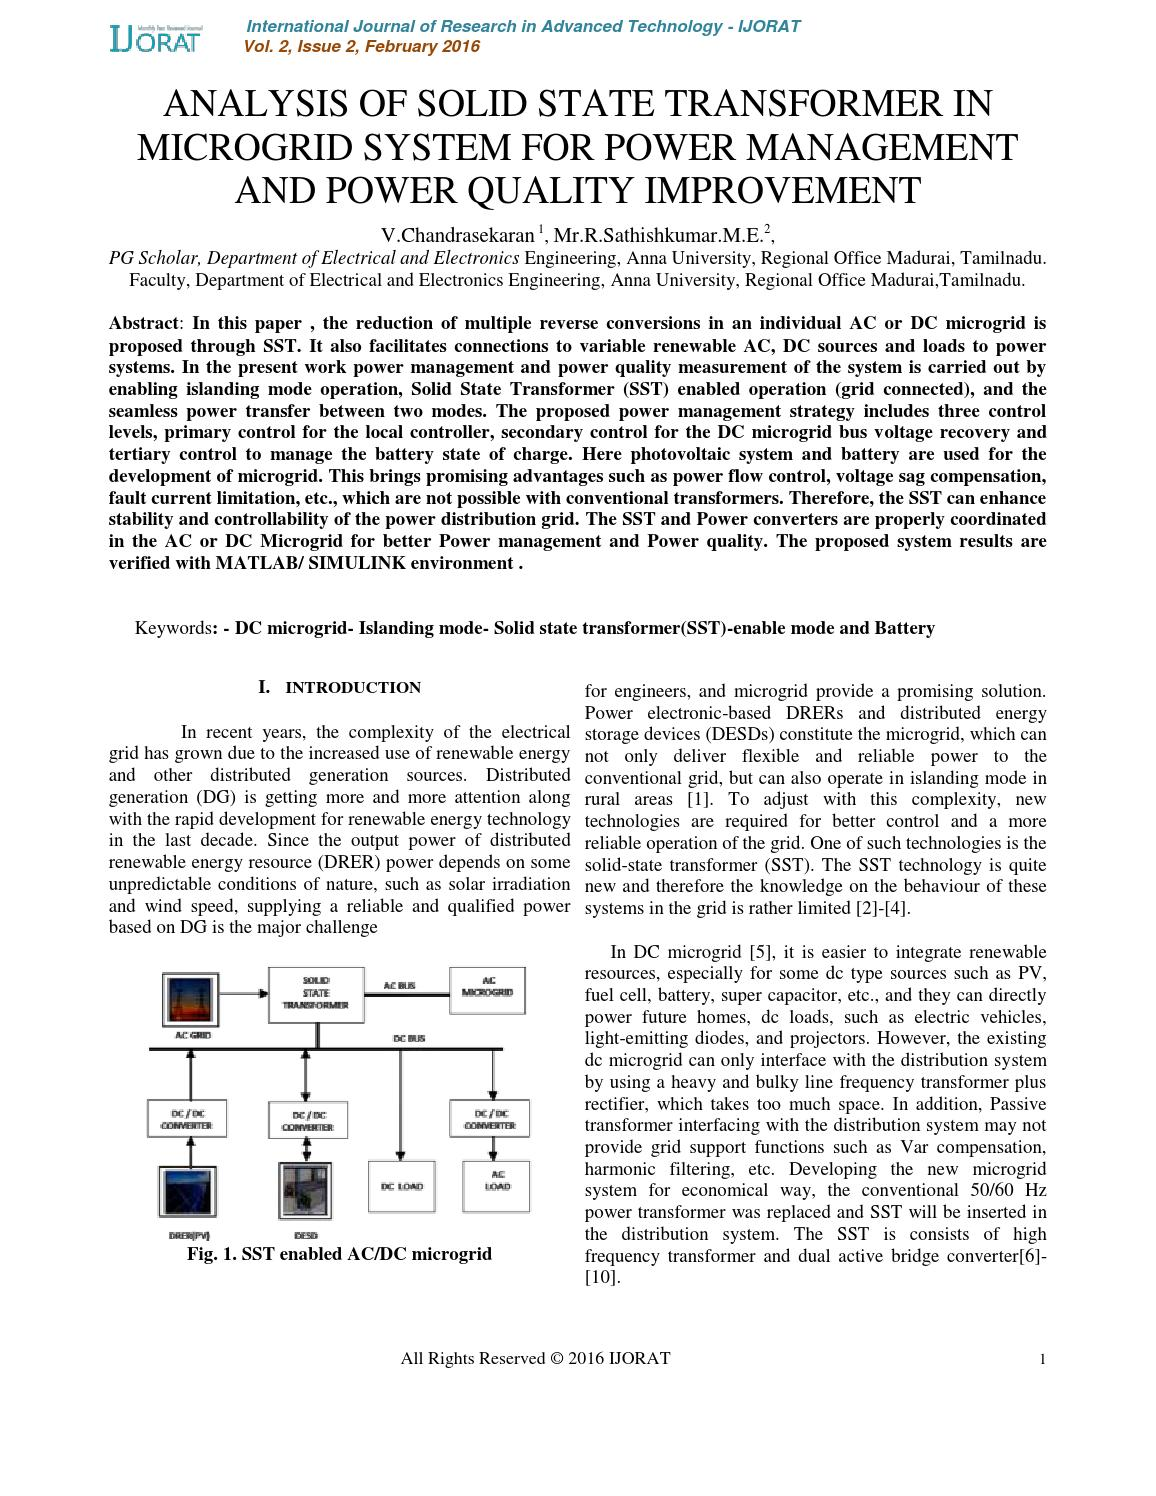 thesis on power system analysis Contingency analysis in power system thesis submitted in partial fulfillment of the requirements for the award of the degree of master of engineering in power systems & electric drives thapar university, patiala by: amit kumar roy (regn no 800941003) under the supervision of: dr sanjay k jain associate professor, eied july 2011 electrical.